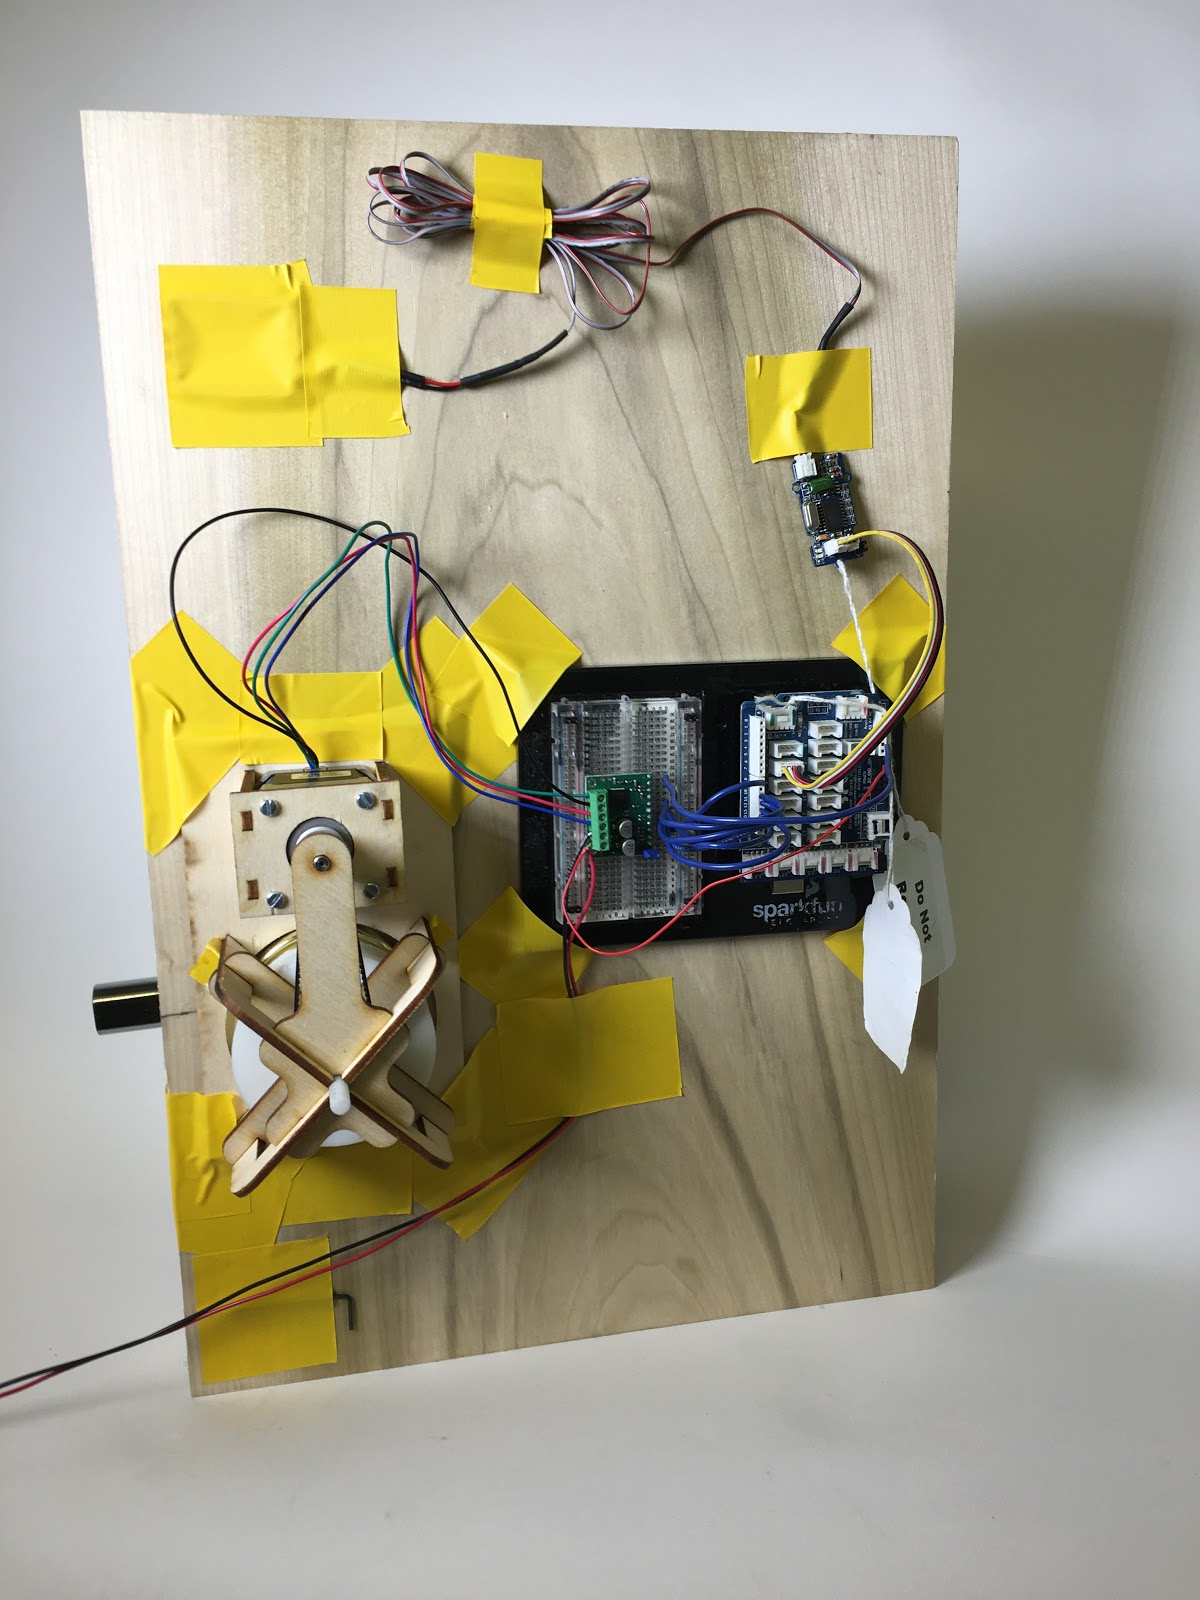 Device mounted on testing board with breadboarded electronics